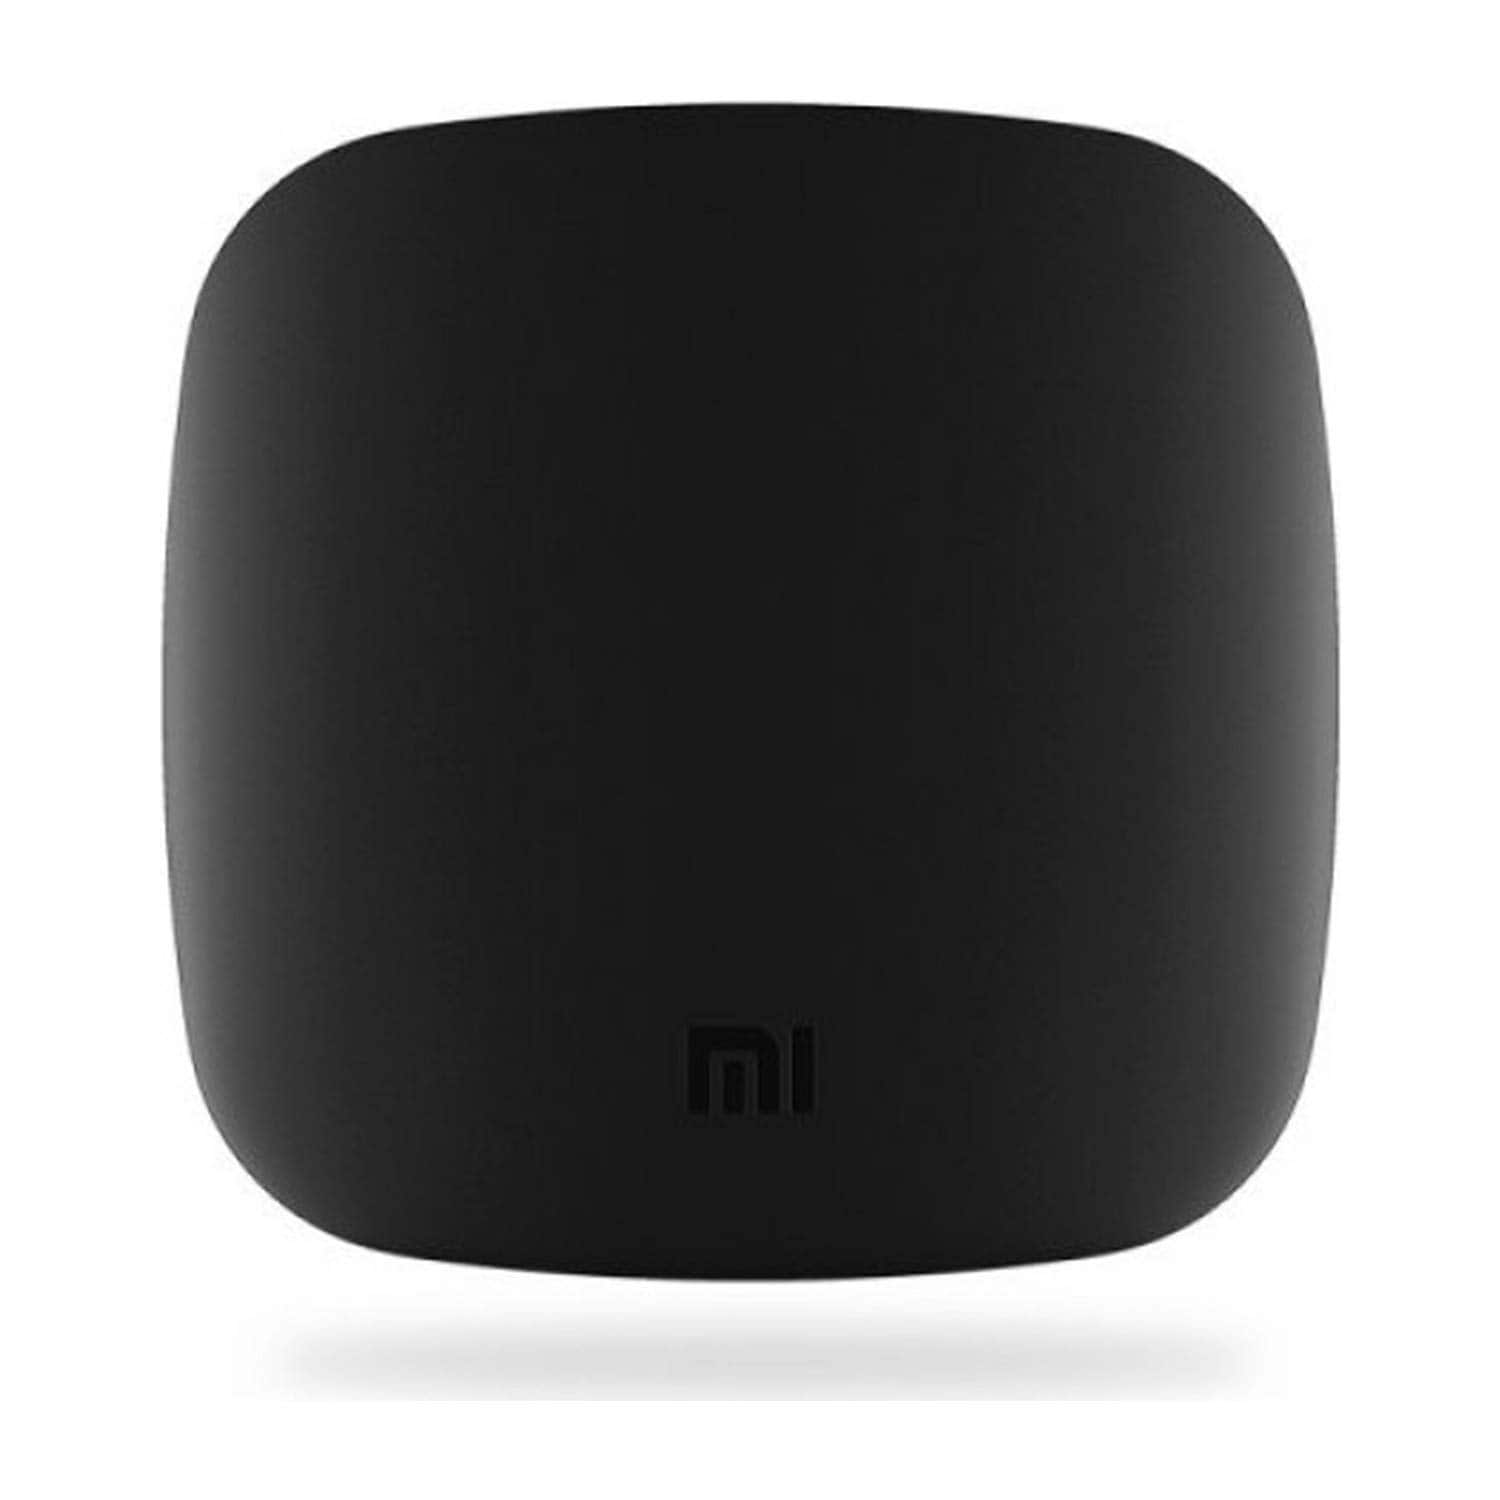 Xiaomi Mi Box S Android TV with Google Assistant - G2A COM